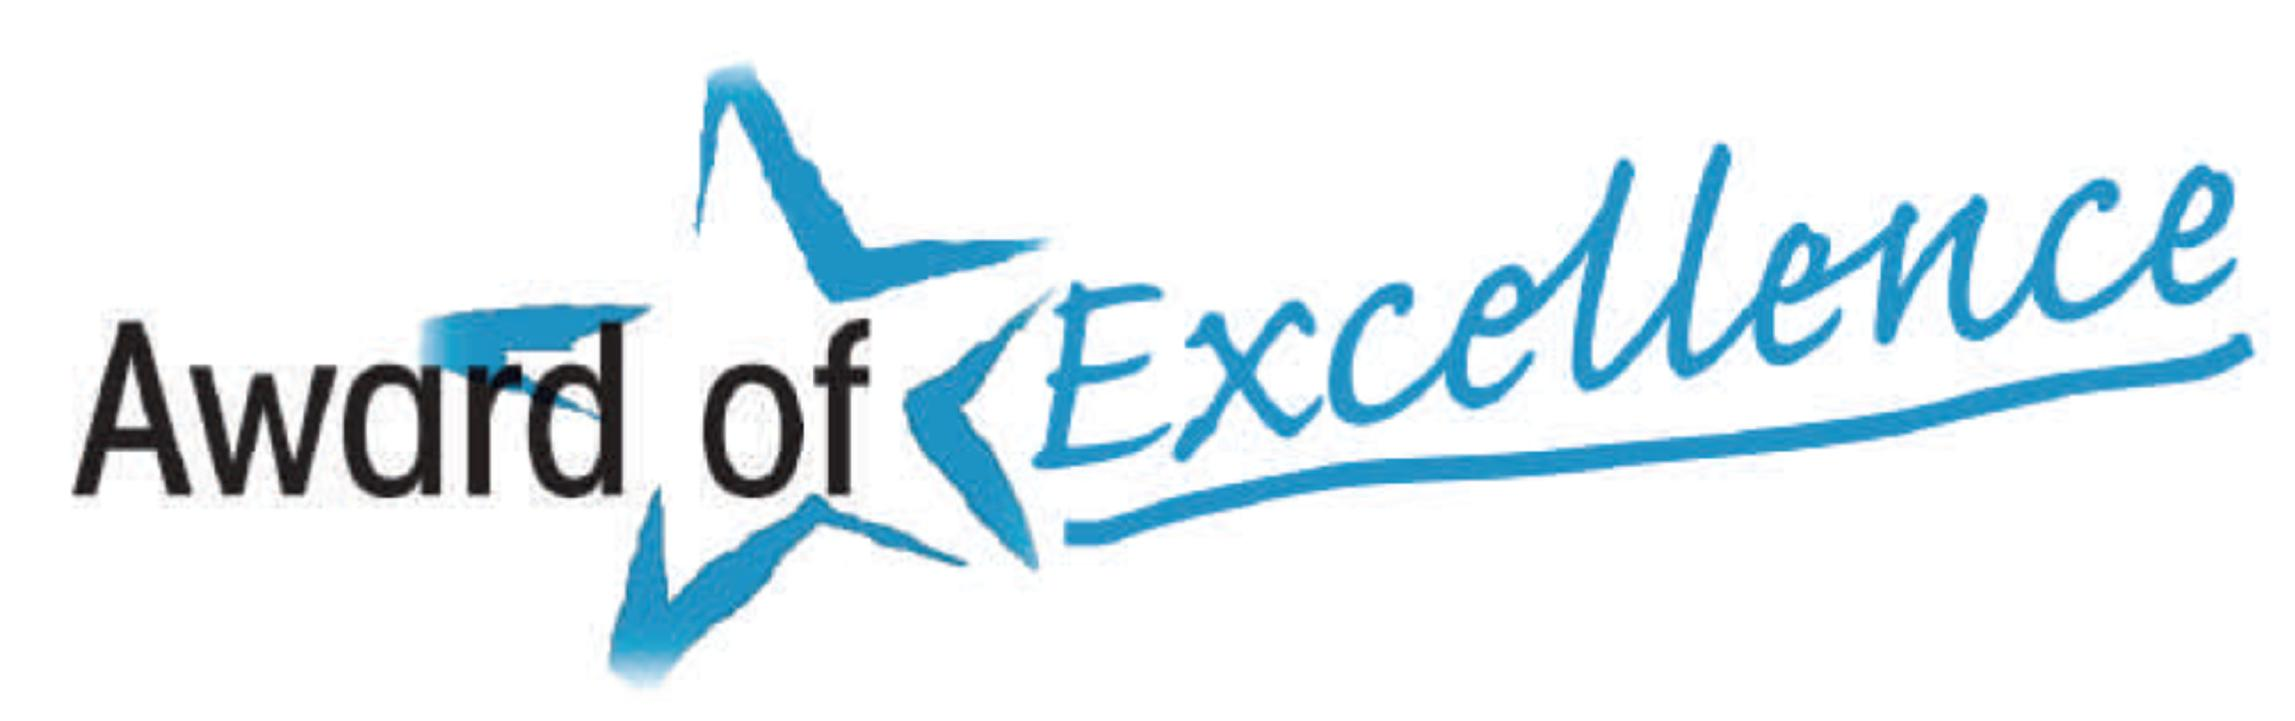 Award-of-Excellence-logo